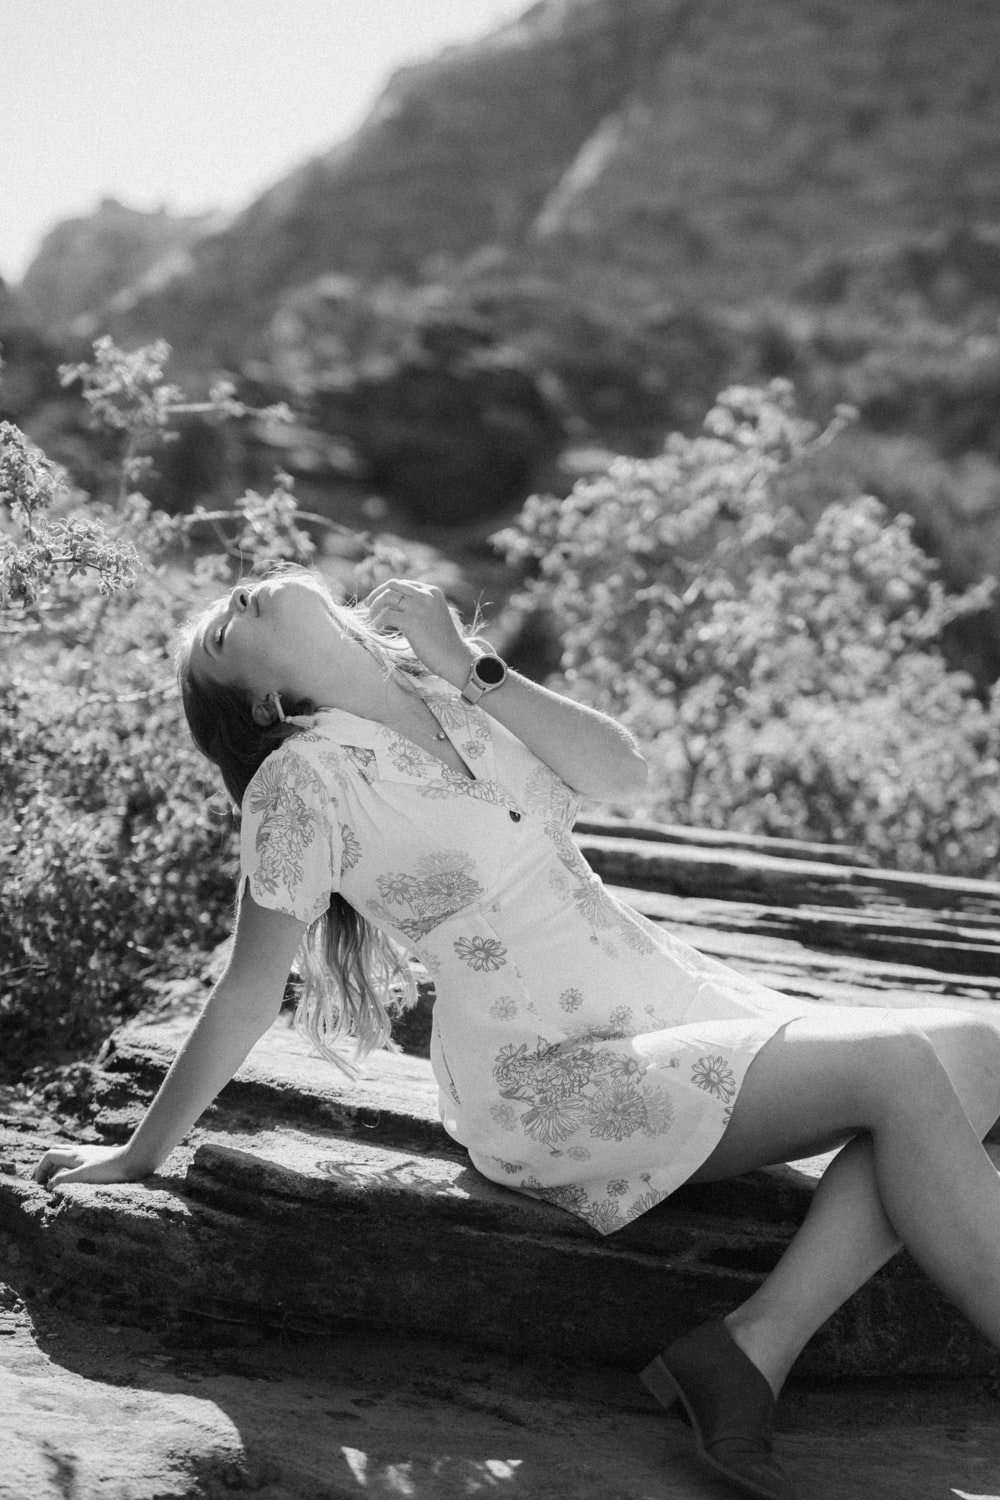 grayscale photo of girl in floral dress sitting on wooden bench